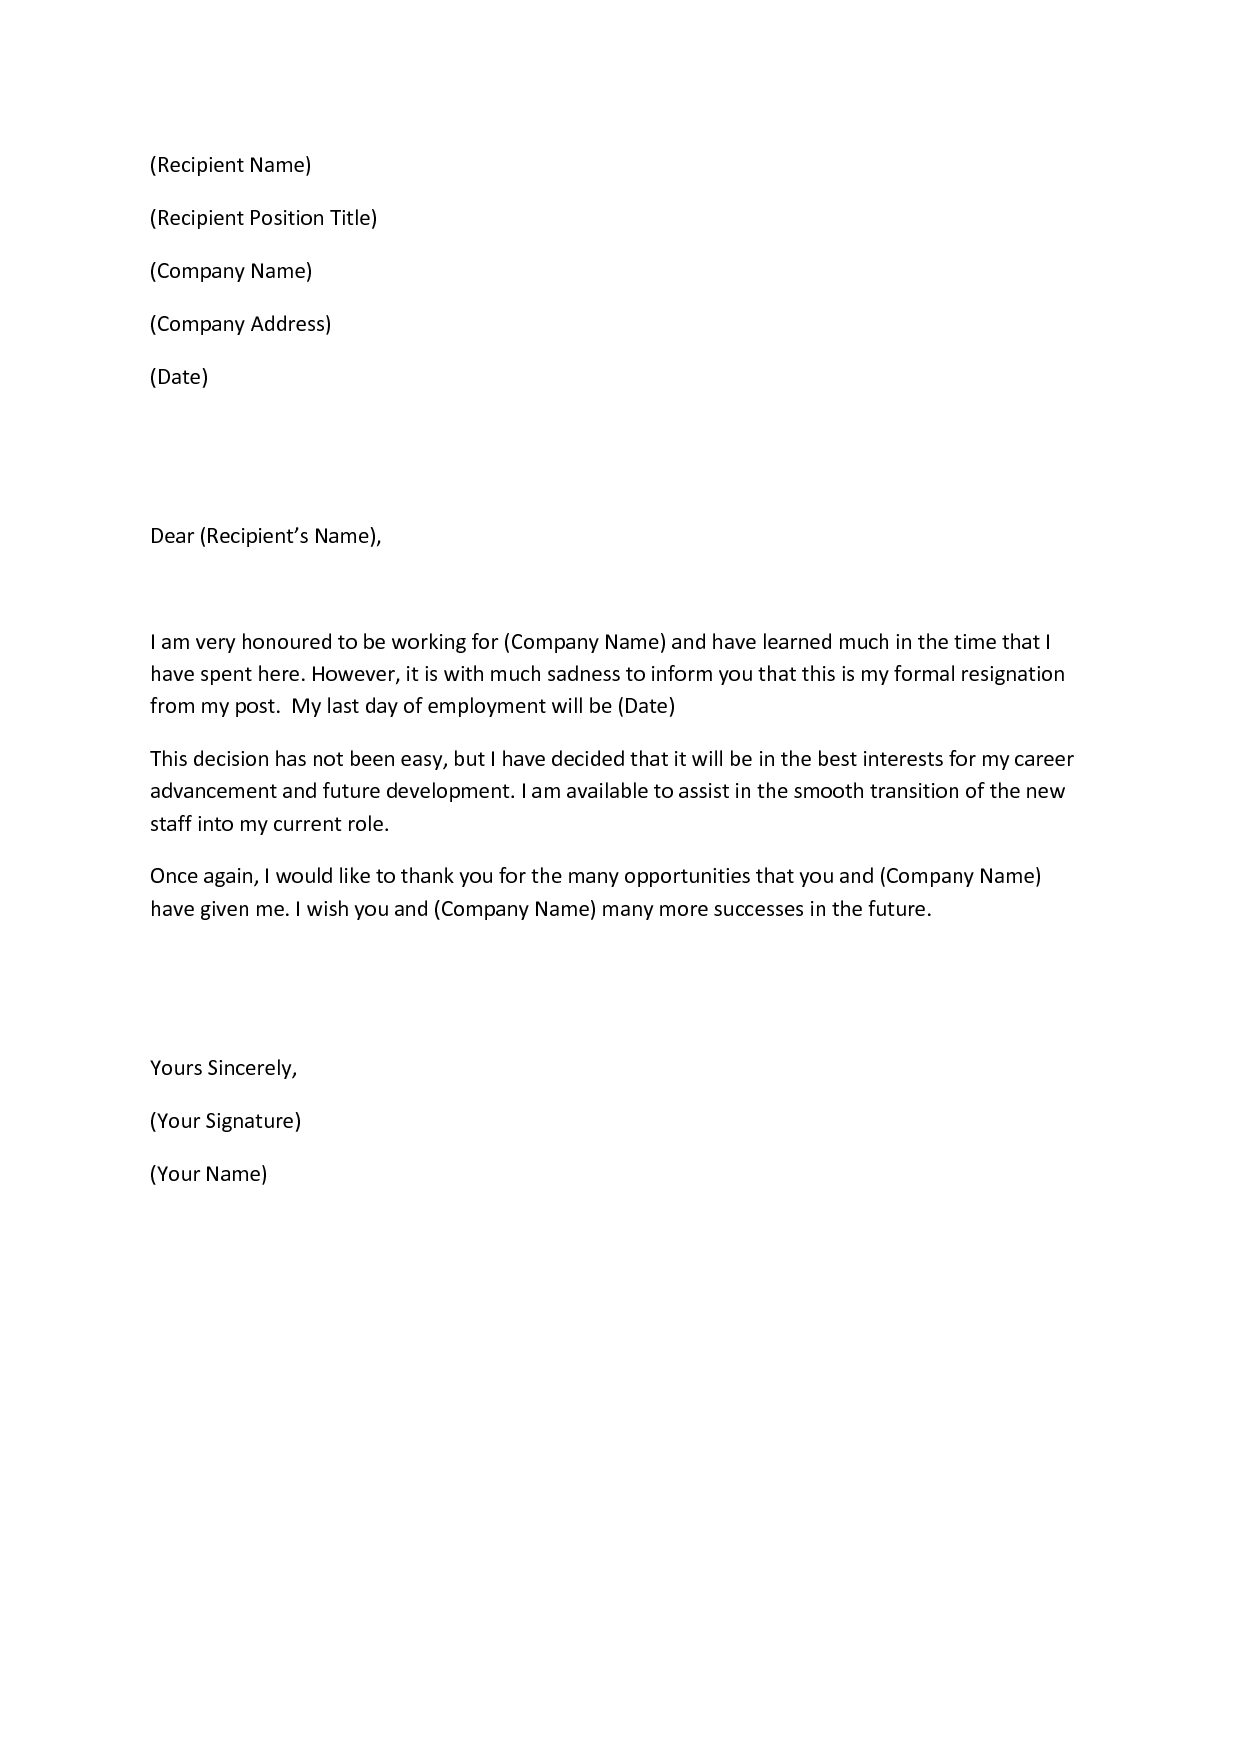 Letters Of Resignation Samples 18 Photos Of Template Of Resignation Letter In Word  Marketing .